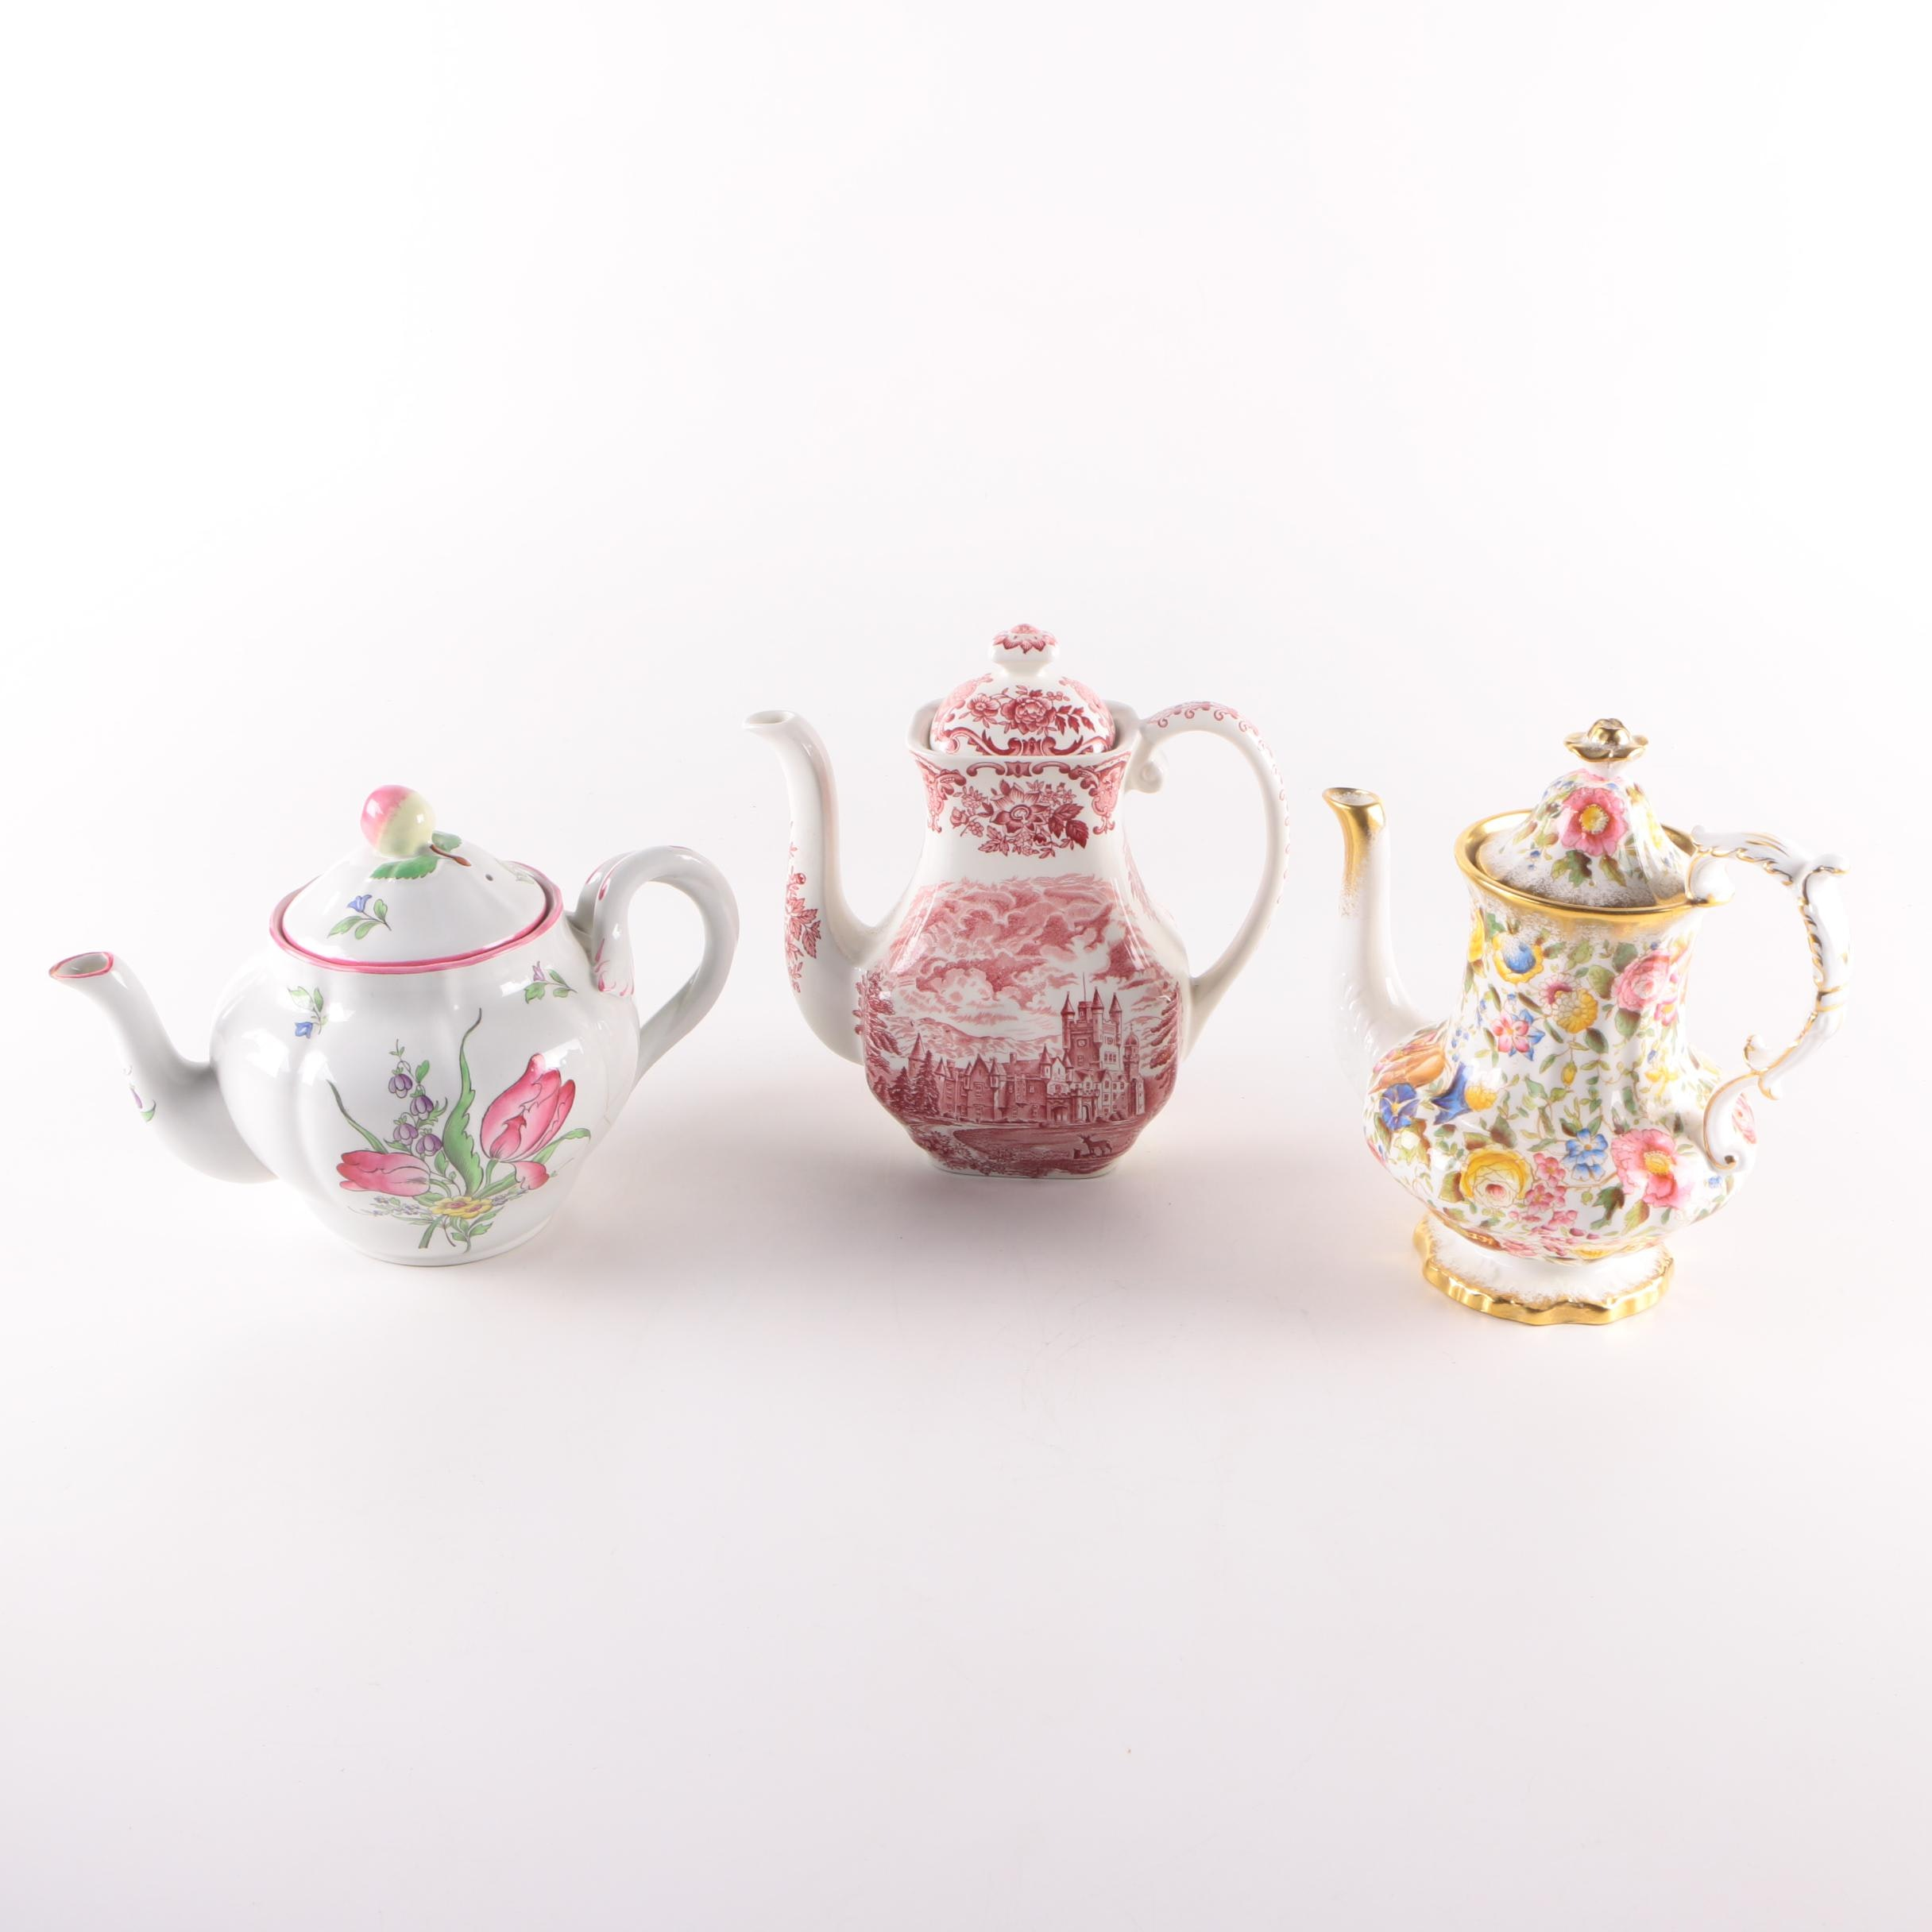 Vintage Teapots Including Spode, Wedgwood and Hammersley